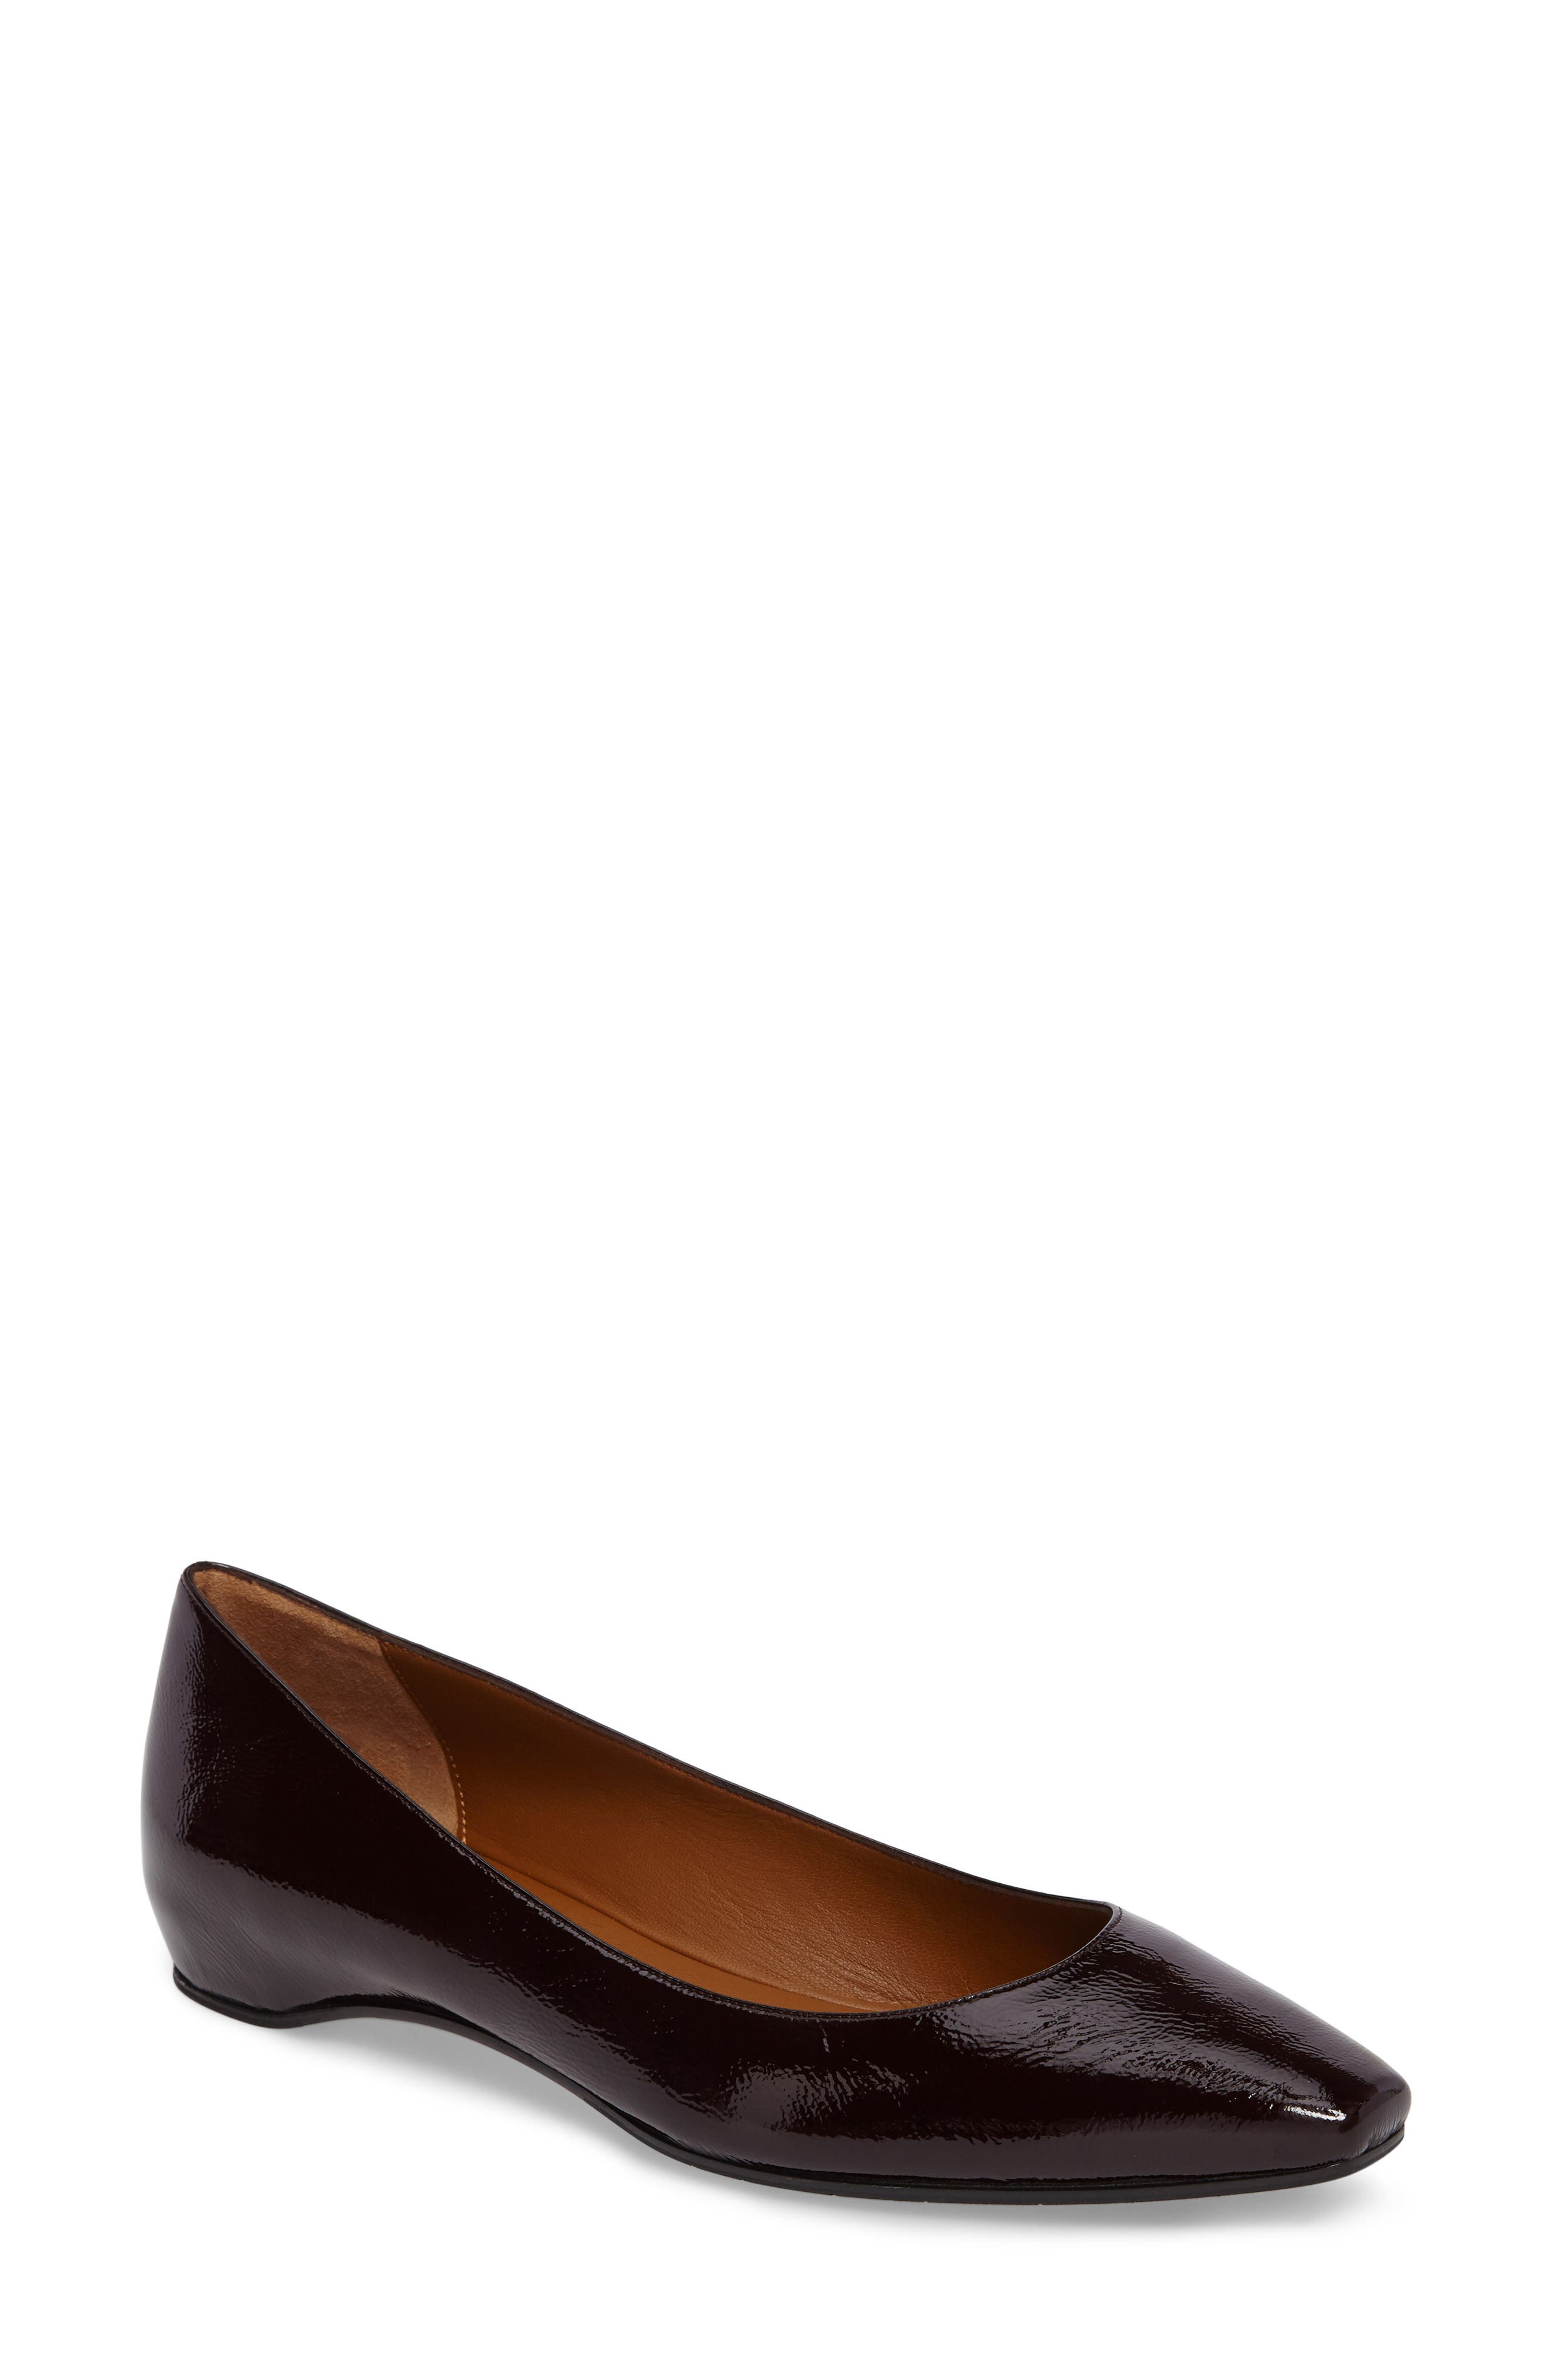 Marcella Weatherproof Leather Flat,                             Main thumbnail 1, color,                             Wine